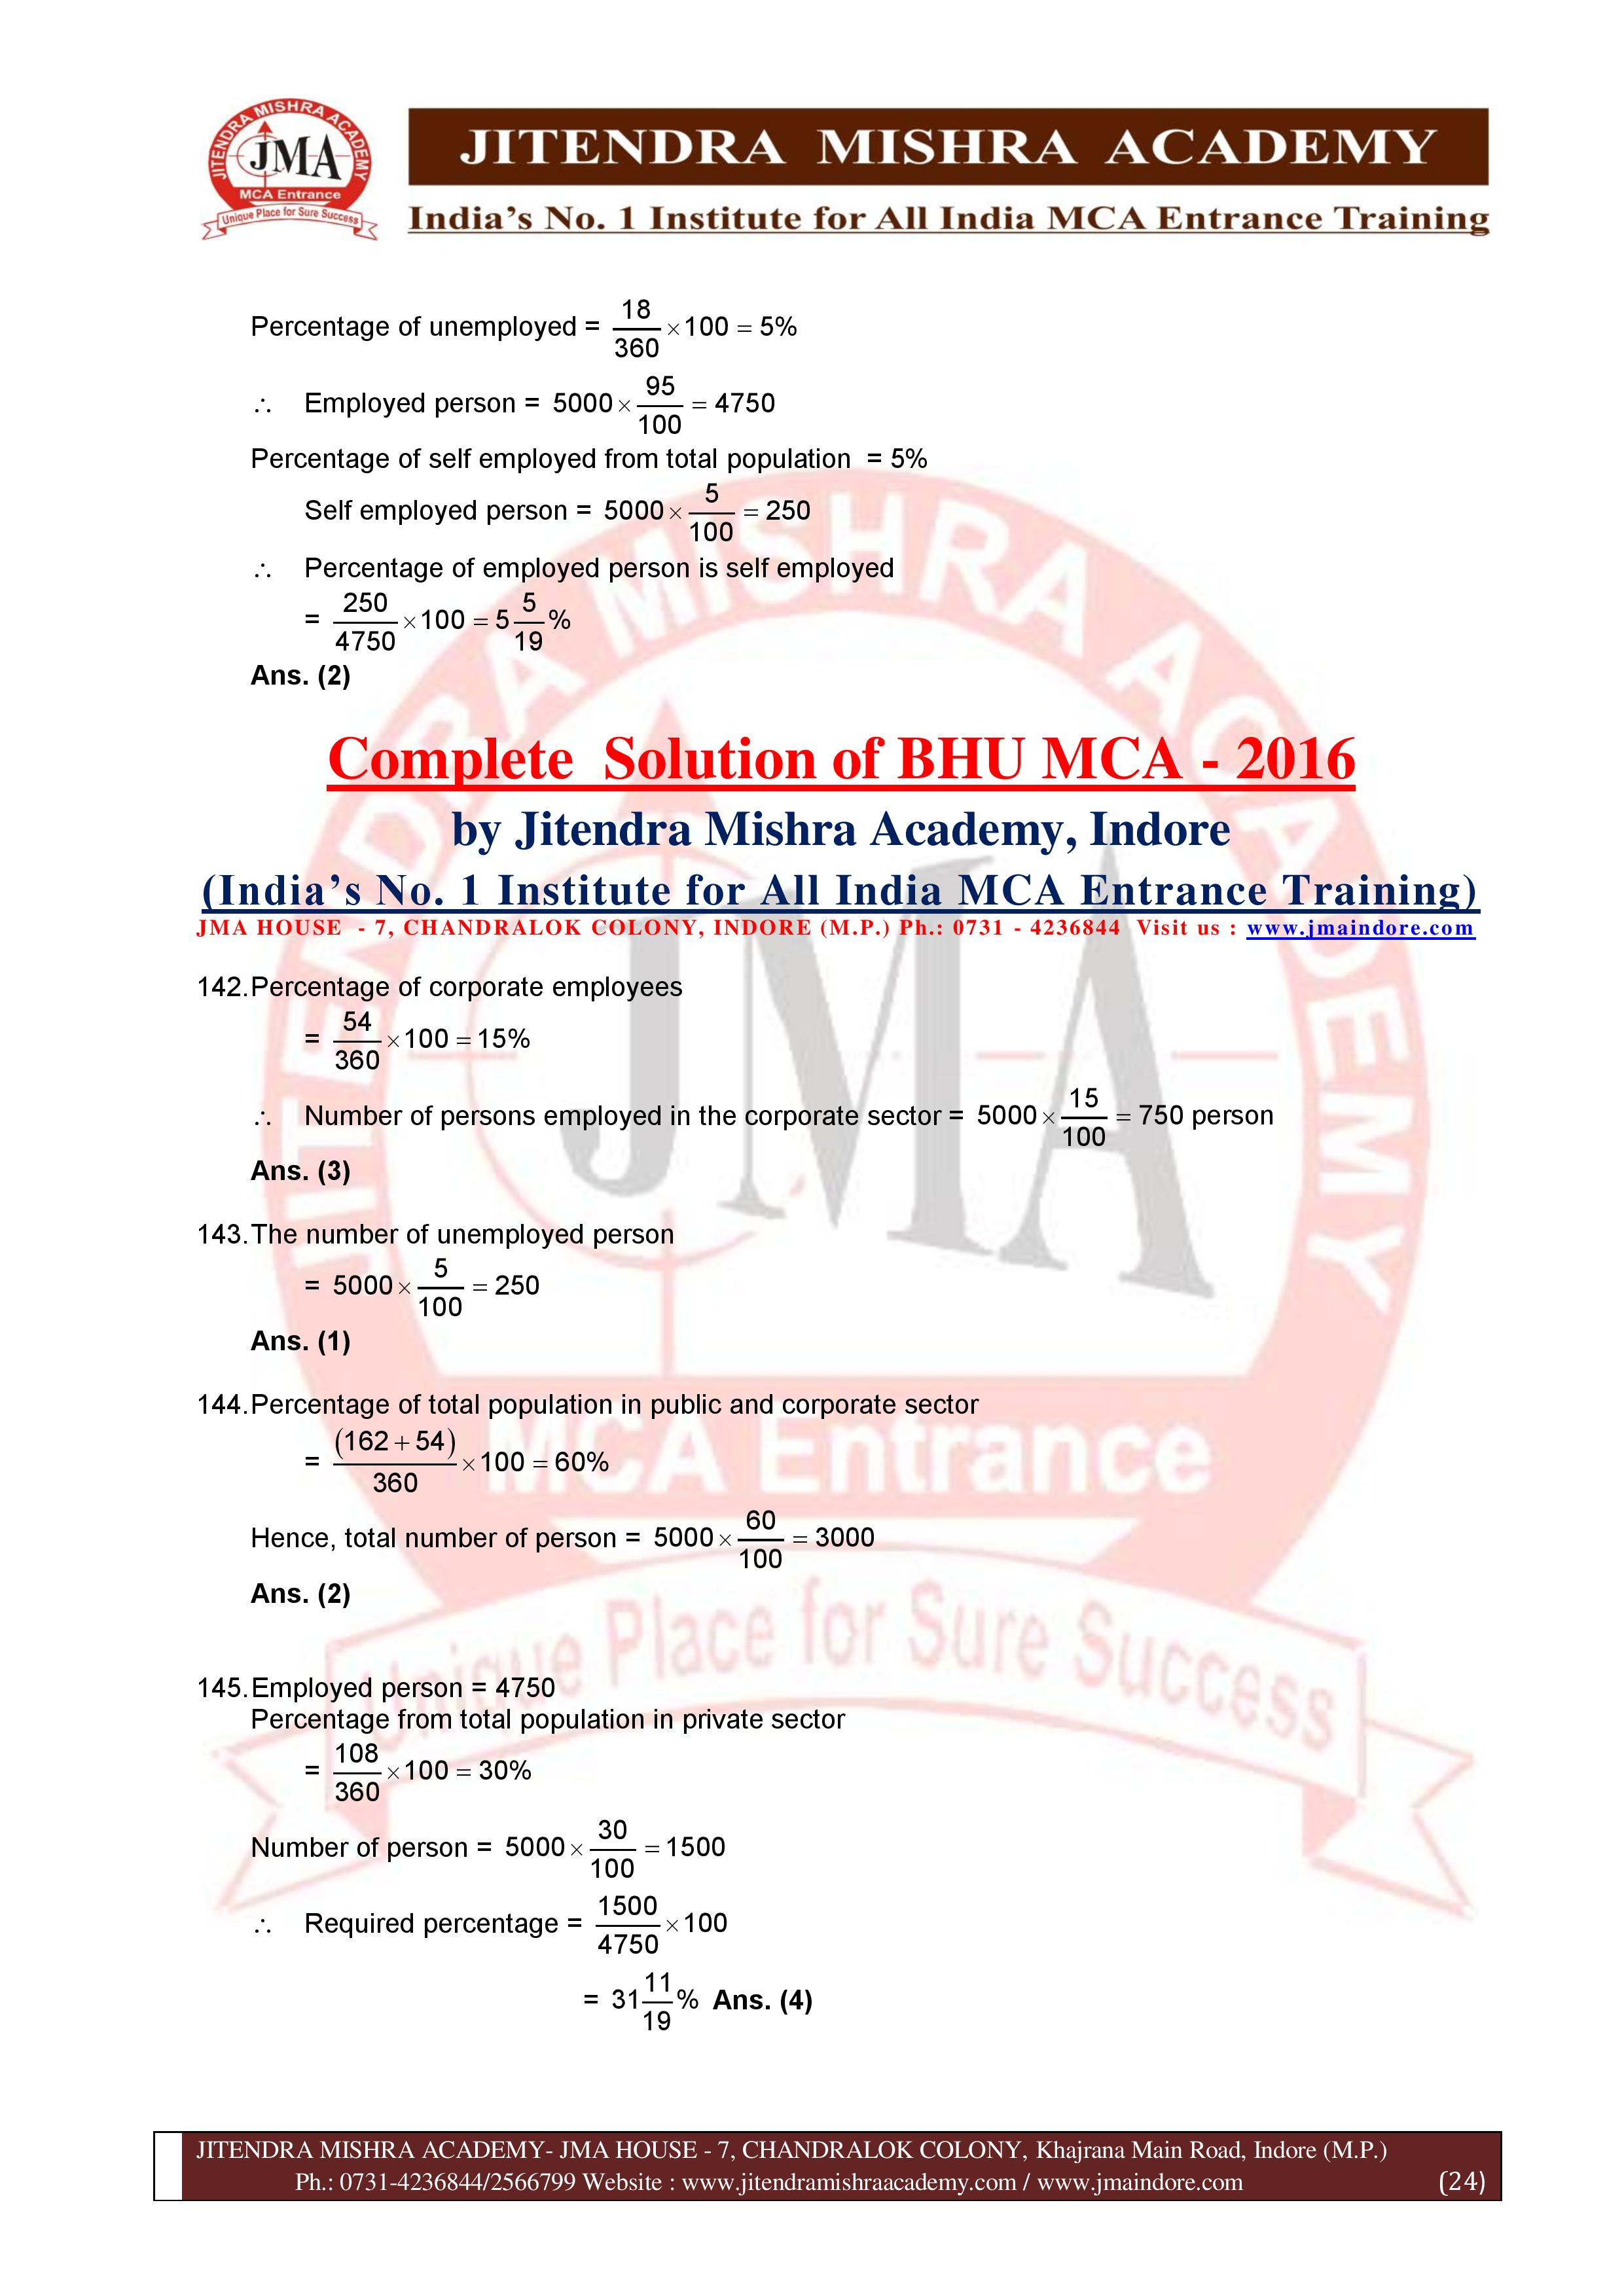 BHU 2016 SOLUTION (SET - 1)-page-024